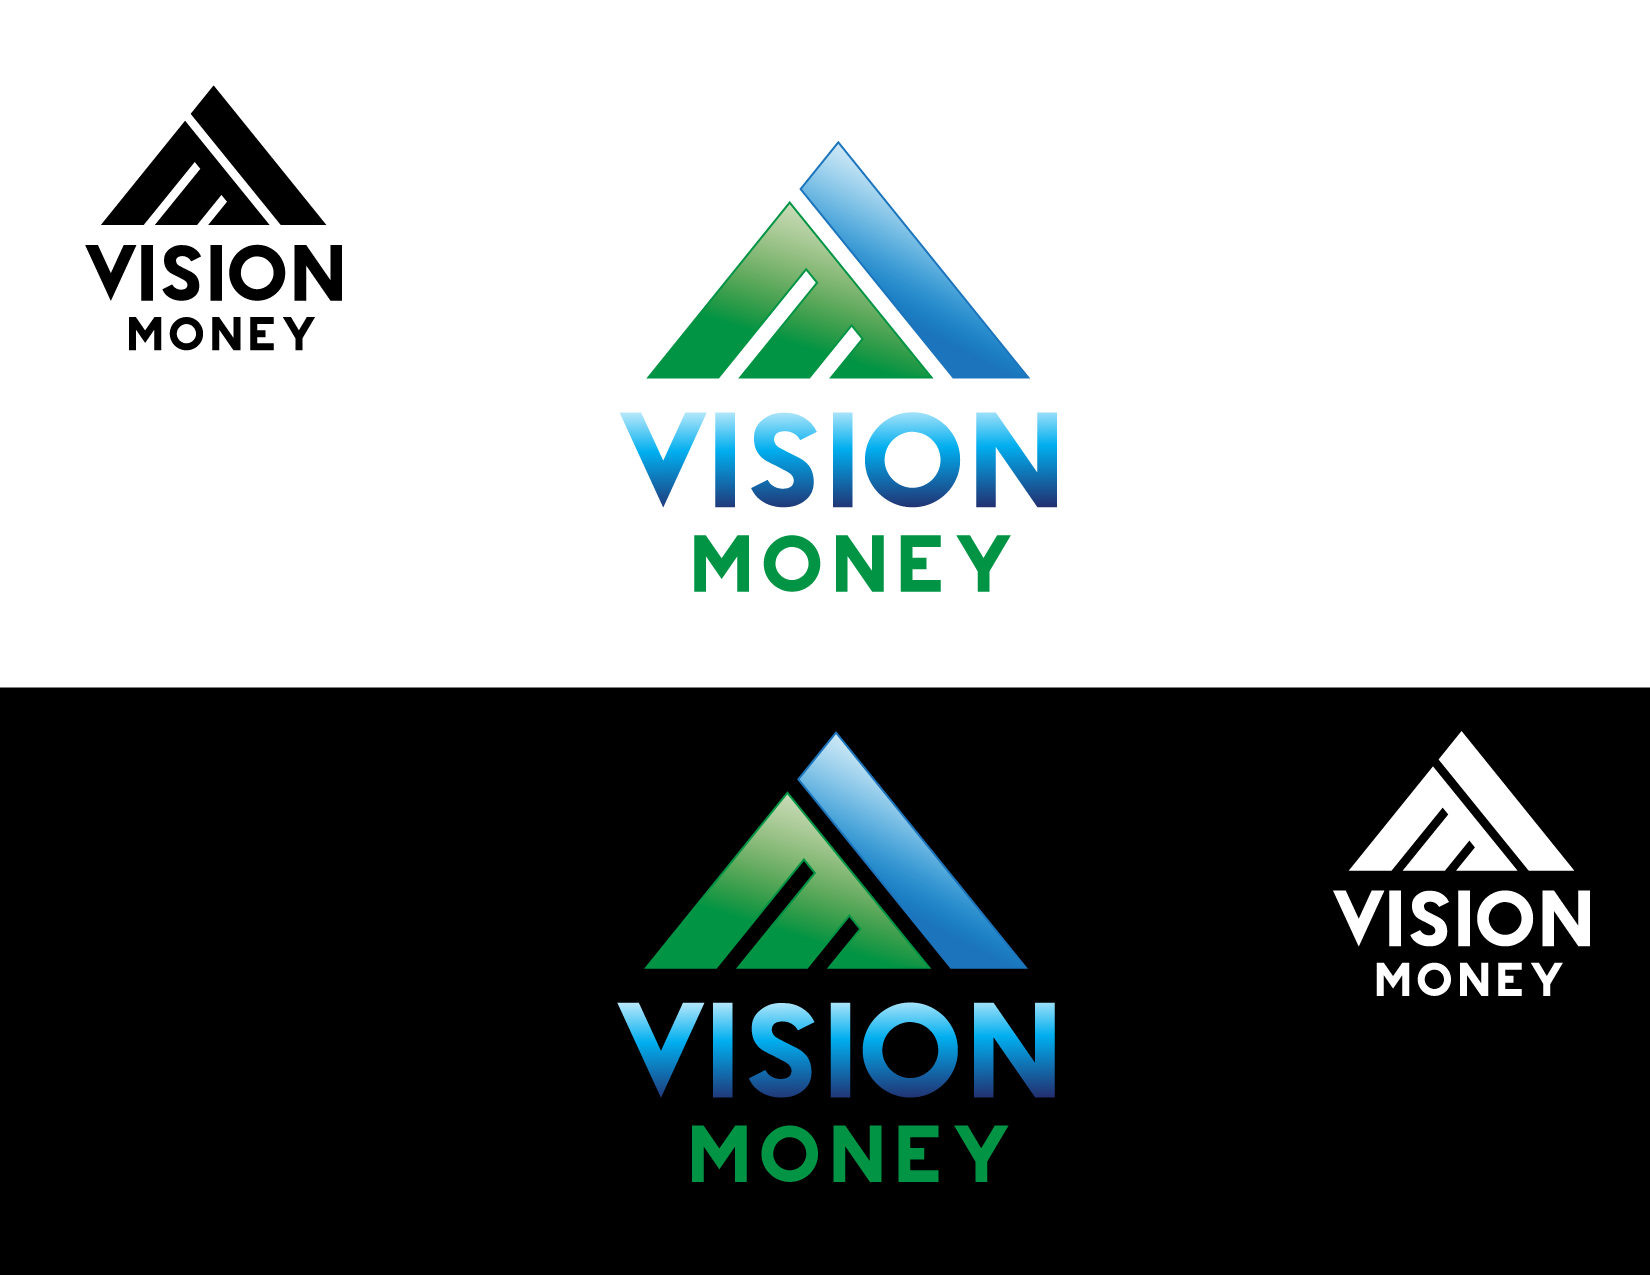 Logo Design by Yansen Yansen - Entry No. 71 in the Logo Design Contest Captivating Logo Design for VISION MONEY.